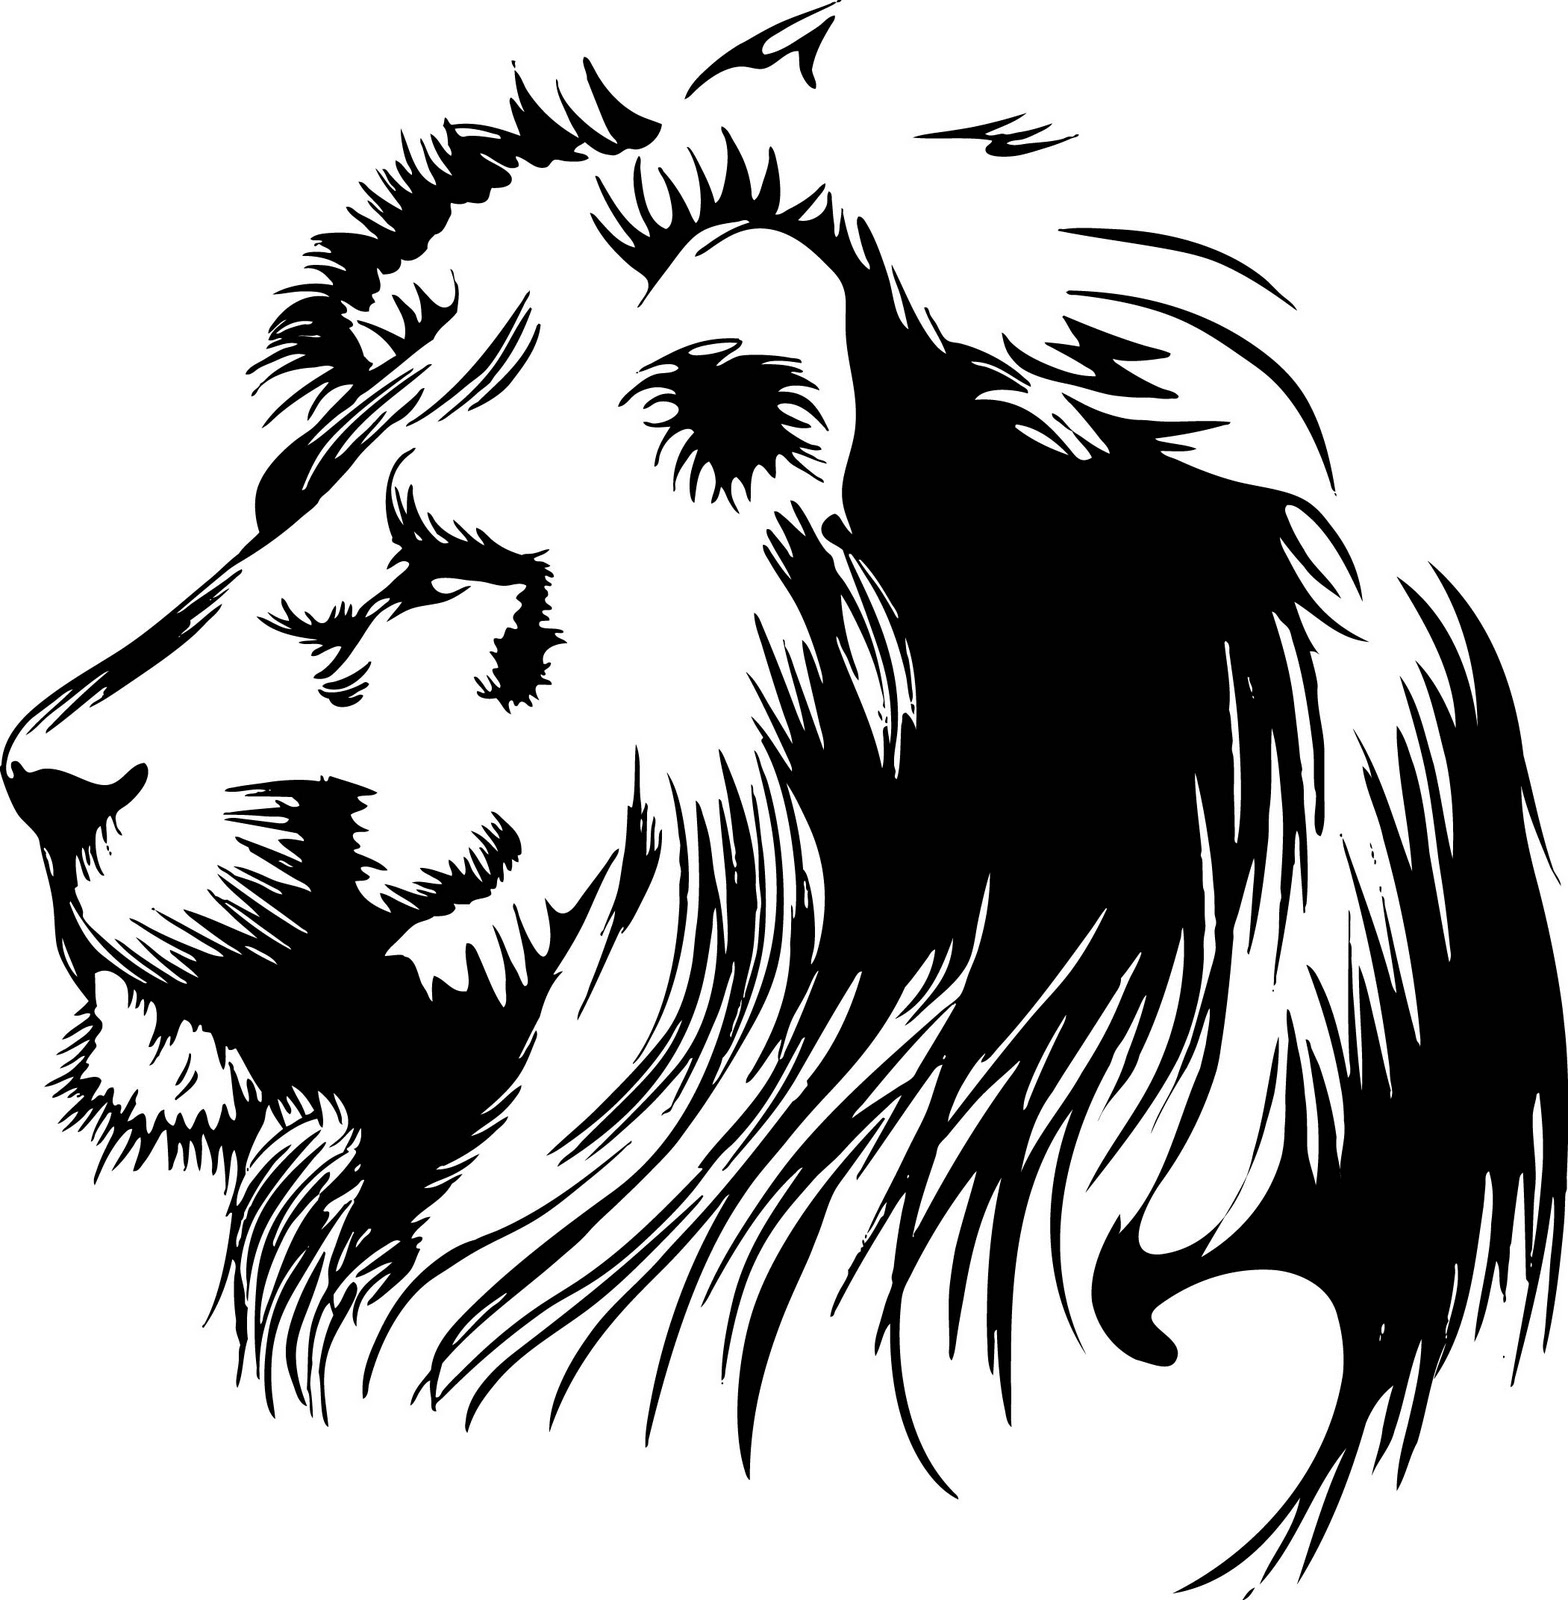 Roaring Lion Clip Art Black And White 15 Free Vector Lion Head Clip Art Images Vector Clip Art